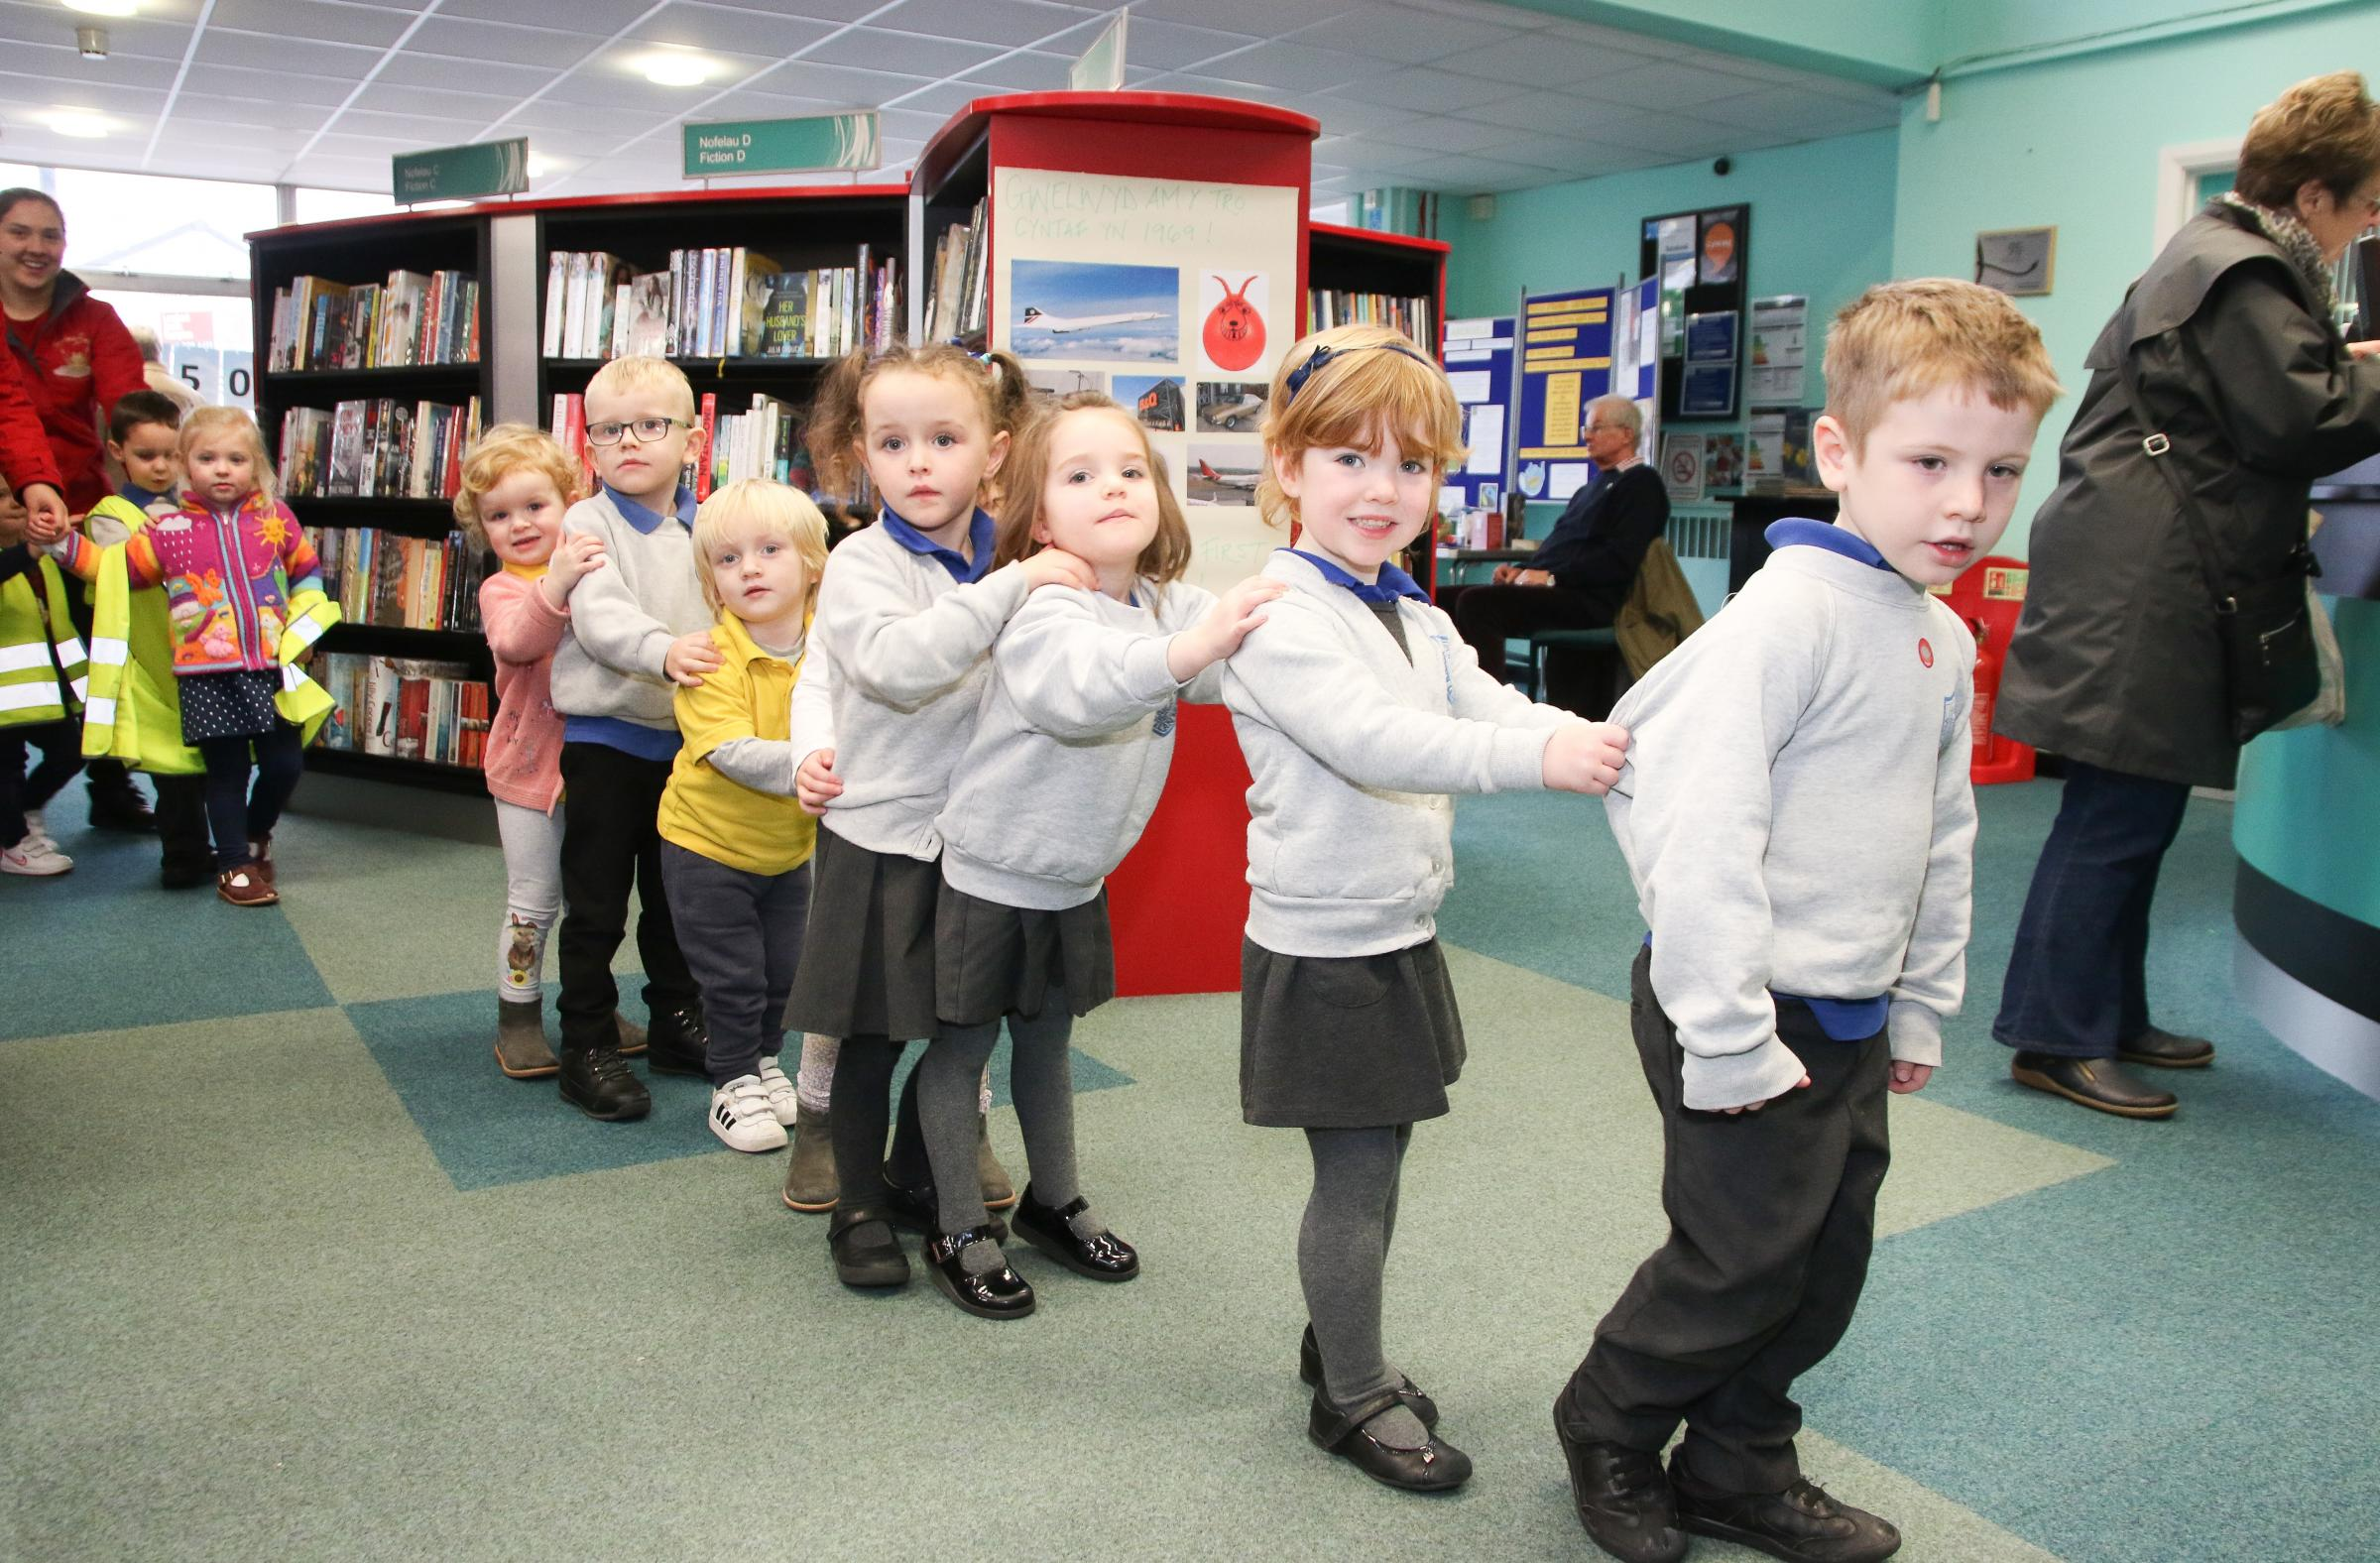 The Hungry Caterpillar was also published 50 years ago, and these children from Cylch Meithrin Abergele came to hear a reading from assistant librarian Judith Griffith and then formed a caterpillar to tour the library. KR100119c.